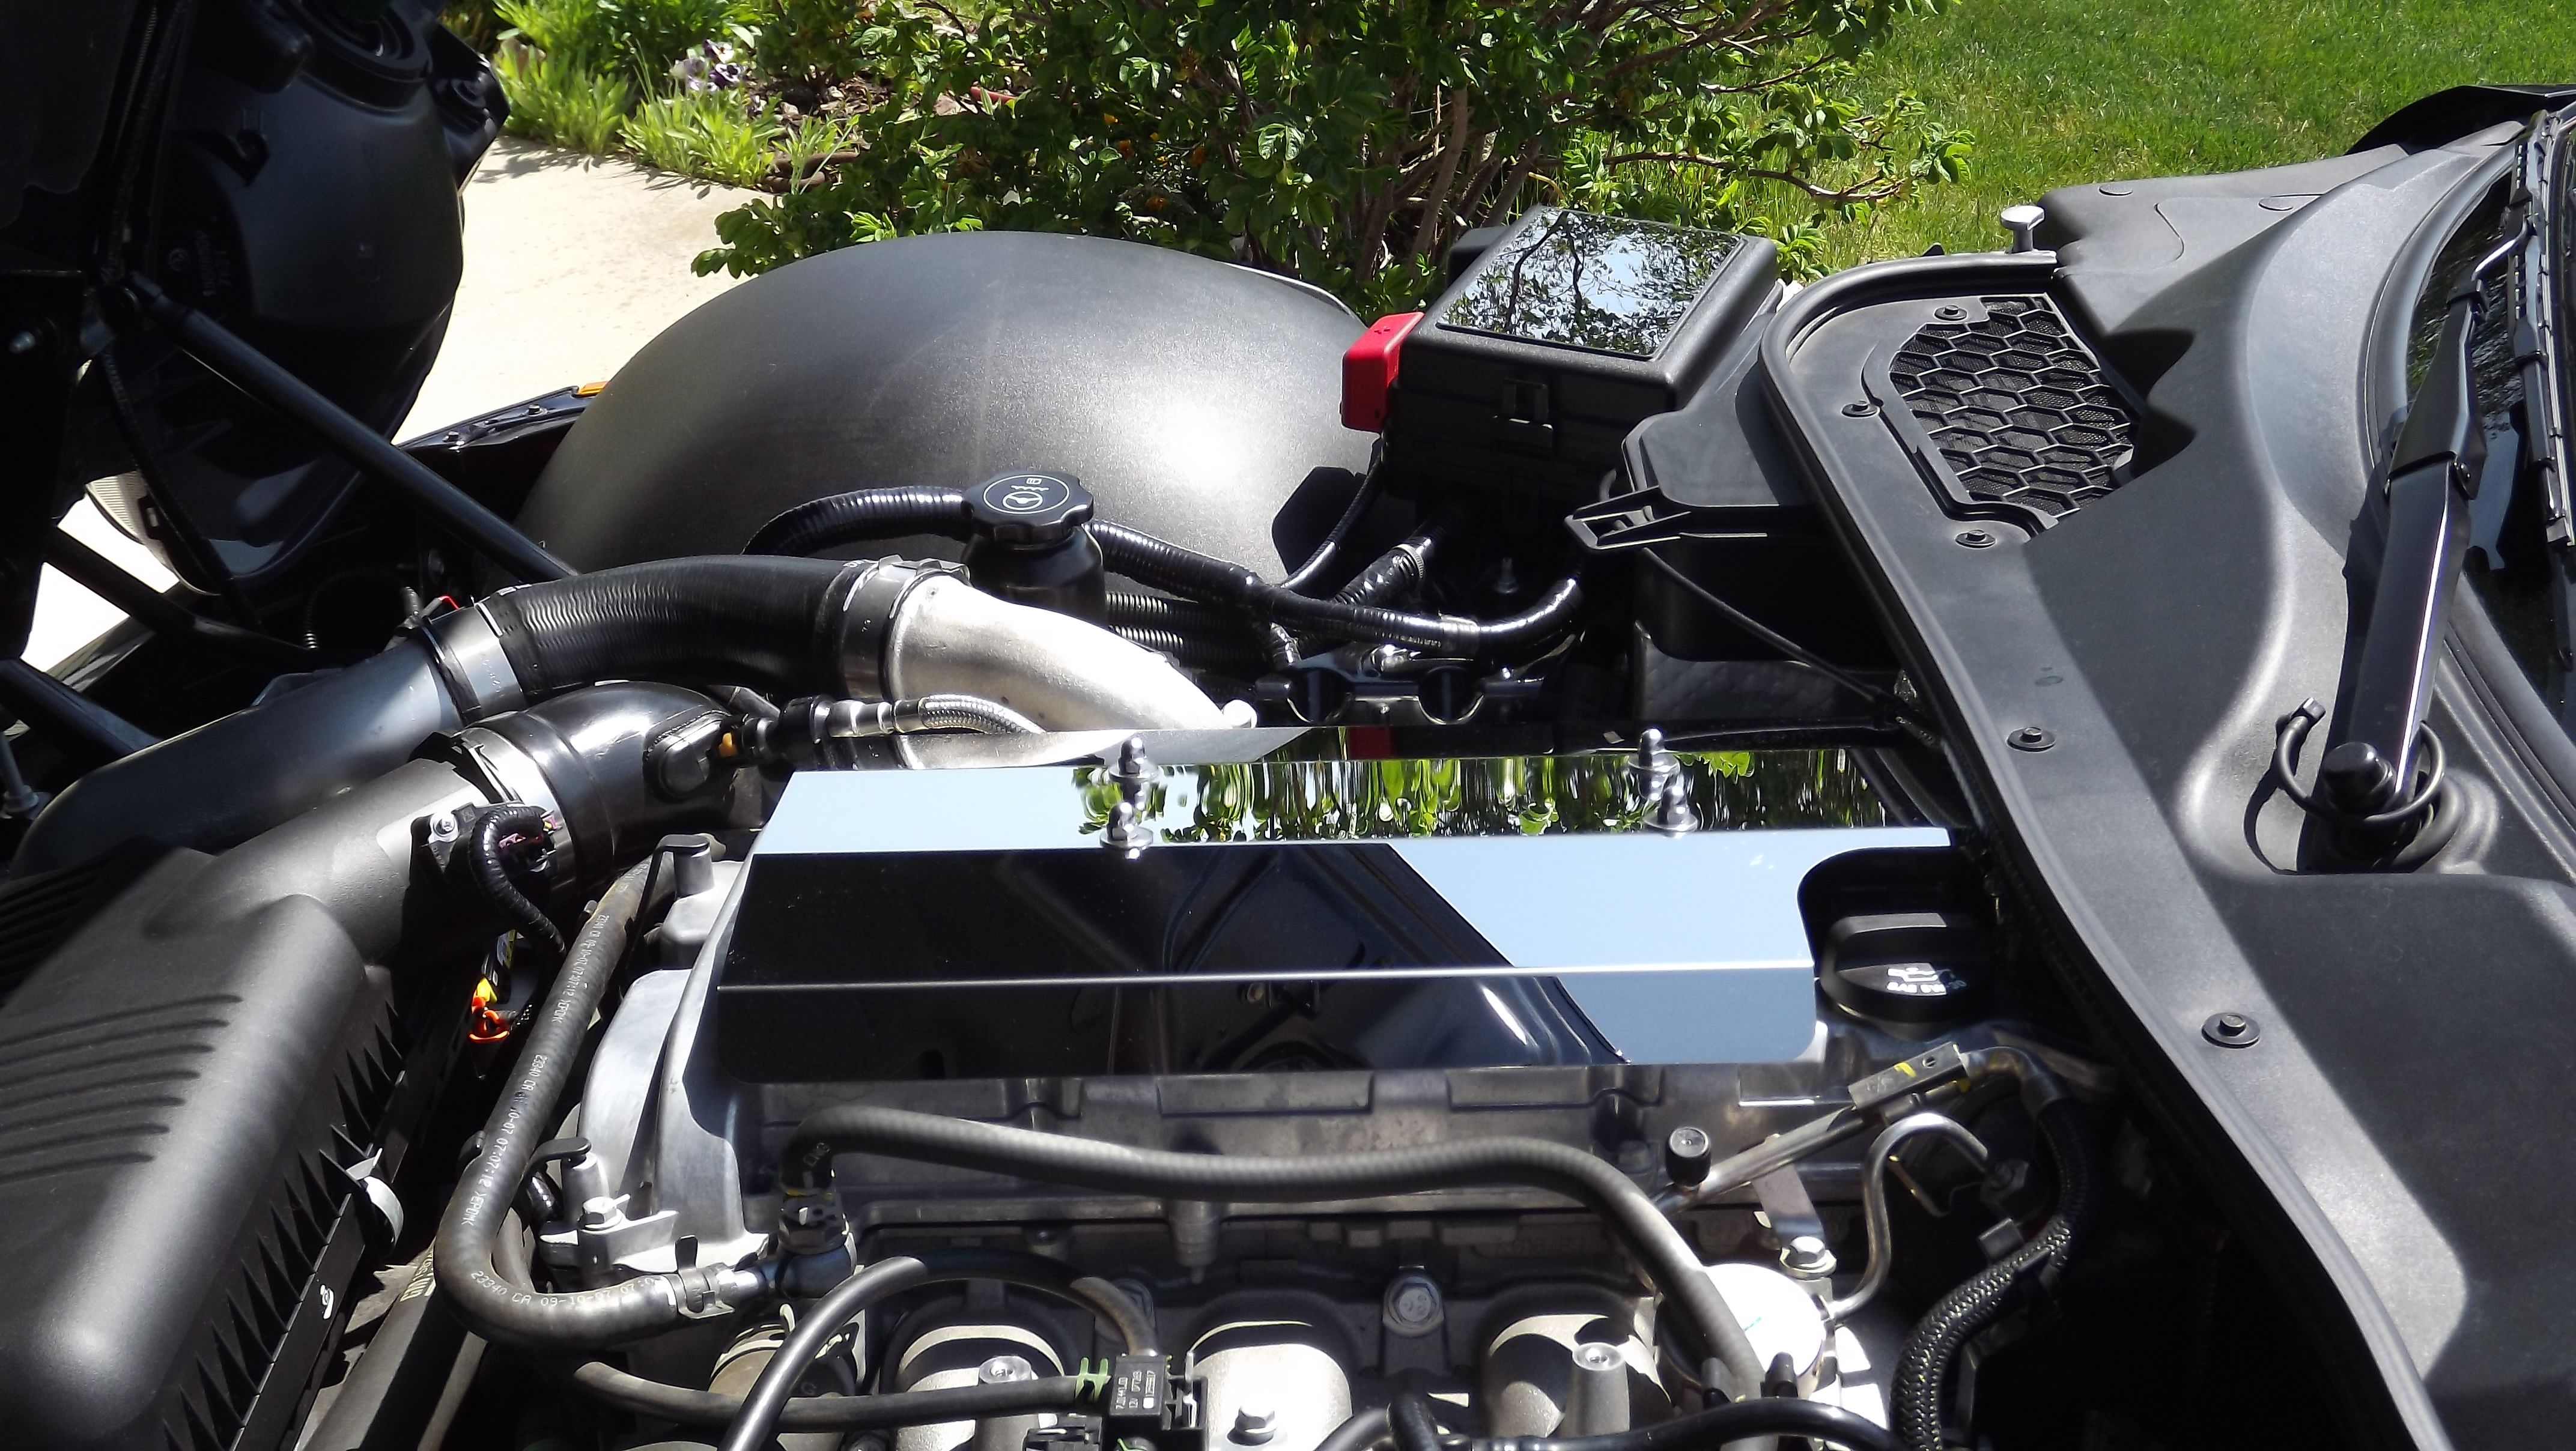 Engine Covers Super D Specialties Com Llc Engineering Turbocharger Vehicle Cleaning